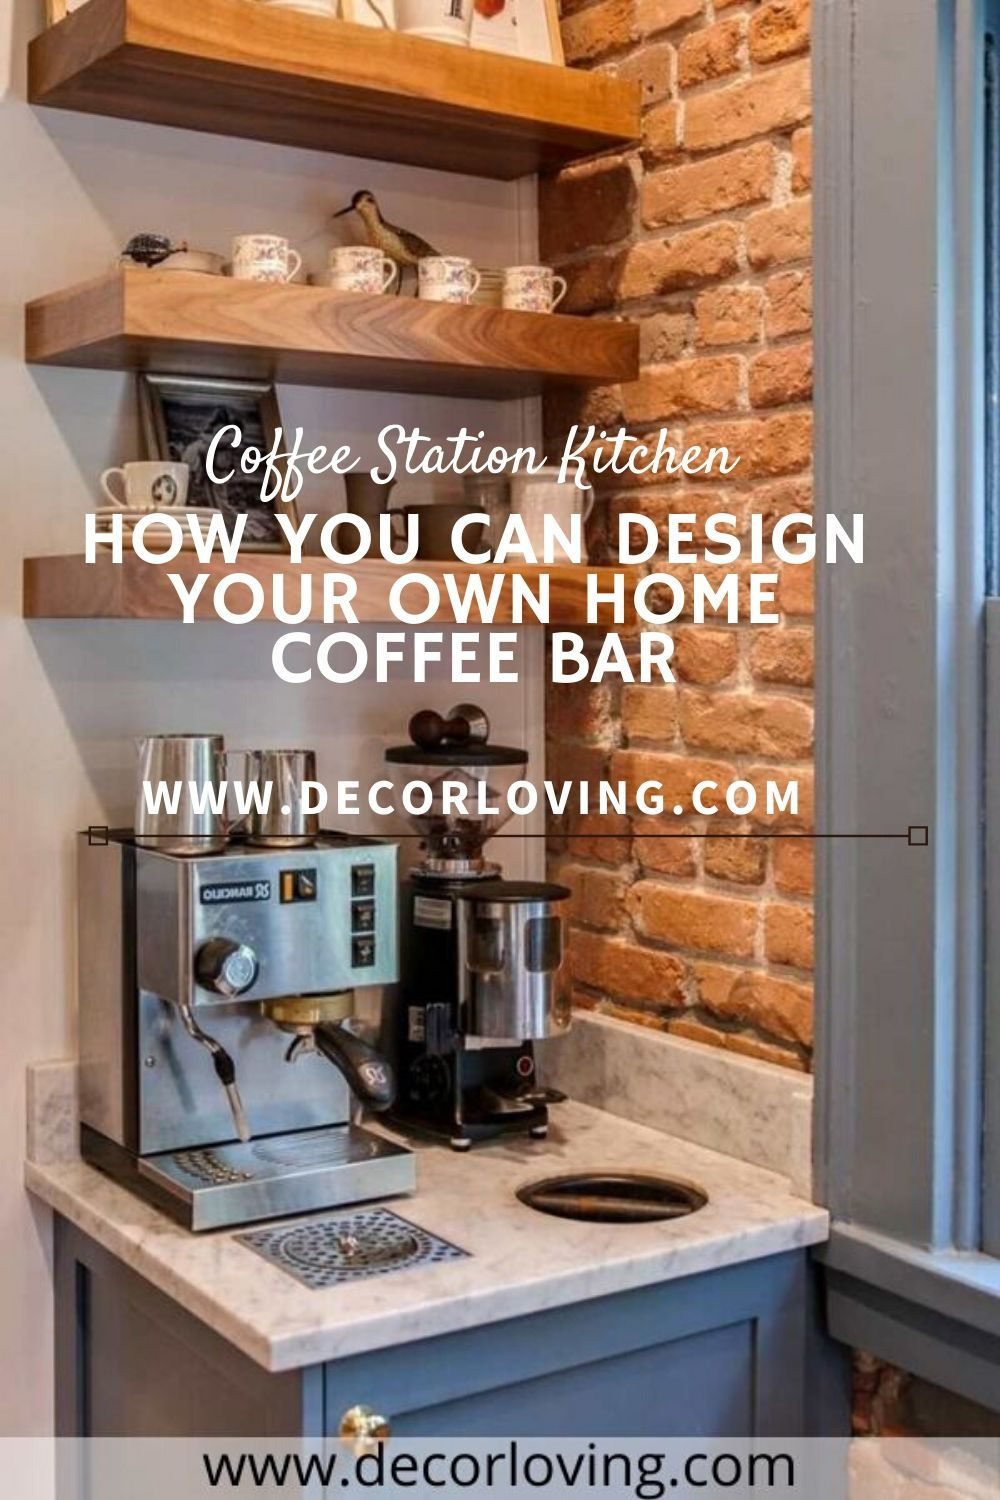 Creative and modern coffee stations and coffee bars are a wonderful option to create a little space on your work surface and make your kitchen even cozier and inviting.  #CoffeeStation #KitchenDesign #CoffeeBarIdeas #CoffeeTable #KitchenIdeas #CoffeeKitchenDecor